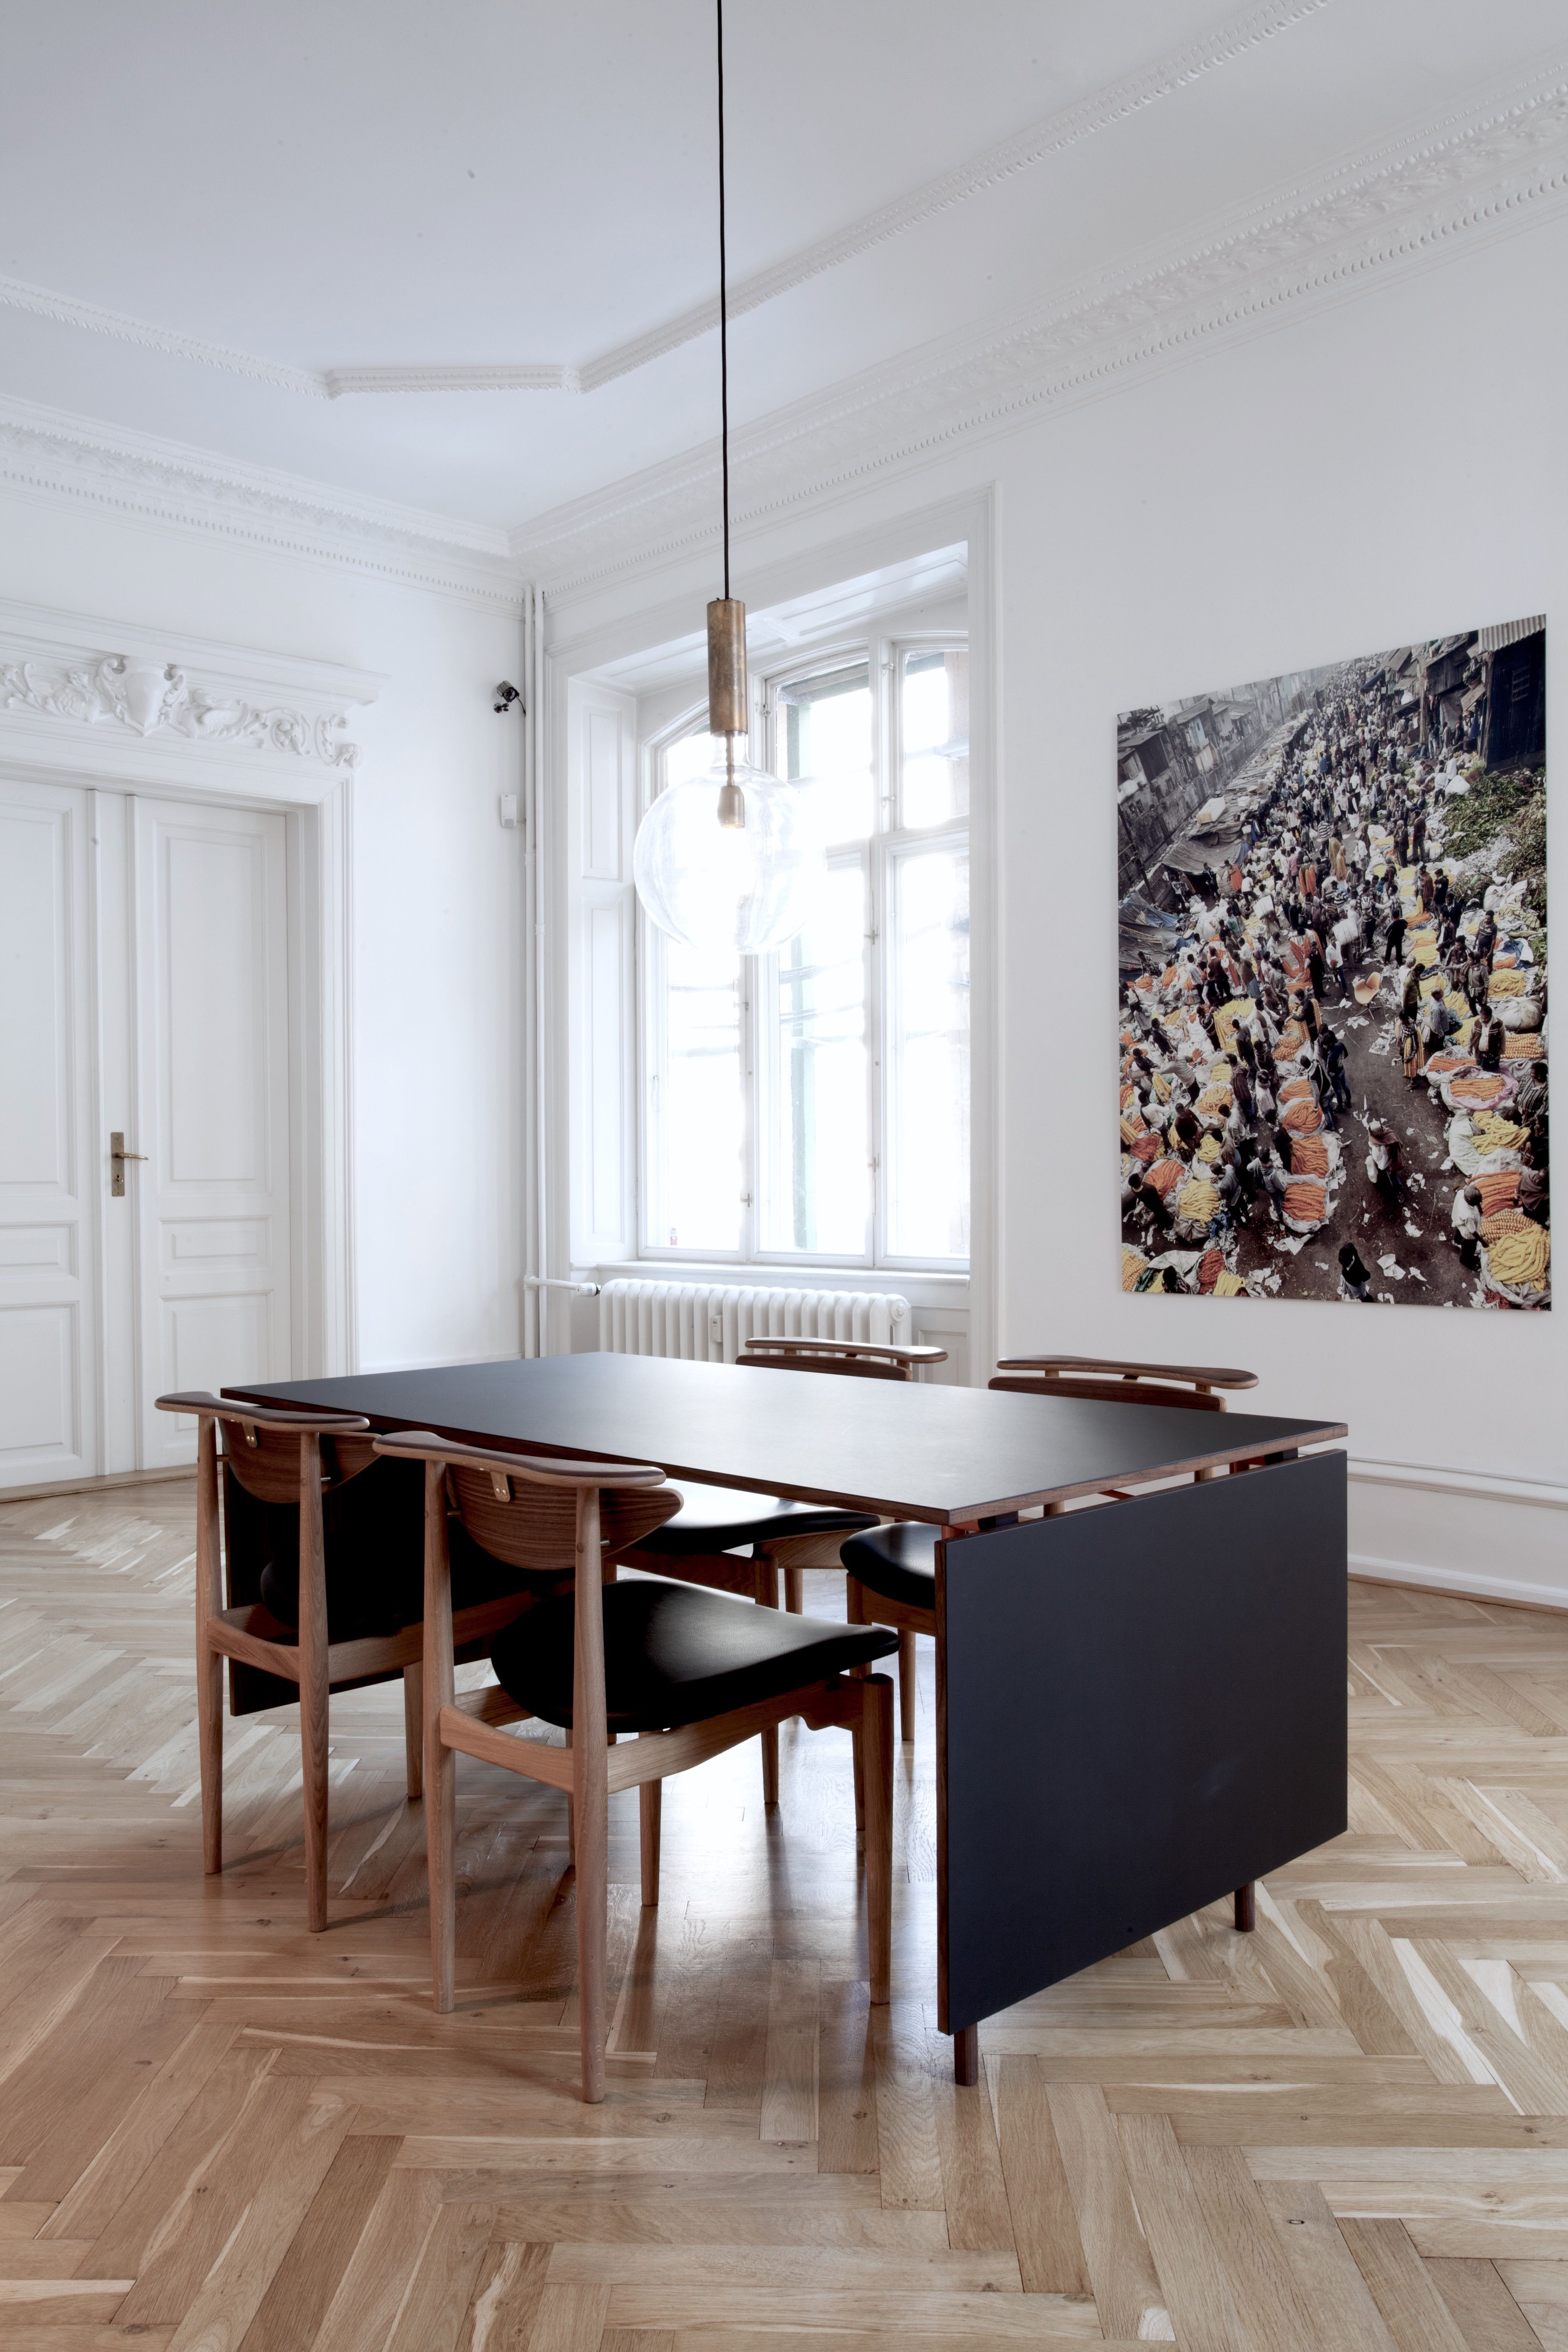 Lovely Stunning Dining Room With Oak Herringbone Floor. Danish Mid Century Modern  Furniture Designed By Finn Juhl. The Reading Chair Was Designed In 1953 And  Is ...